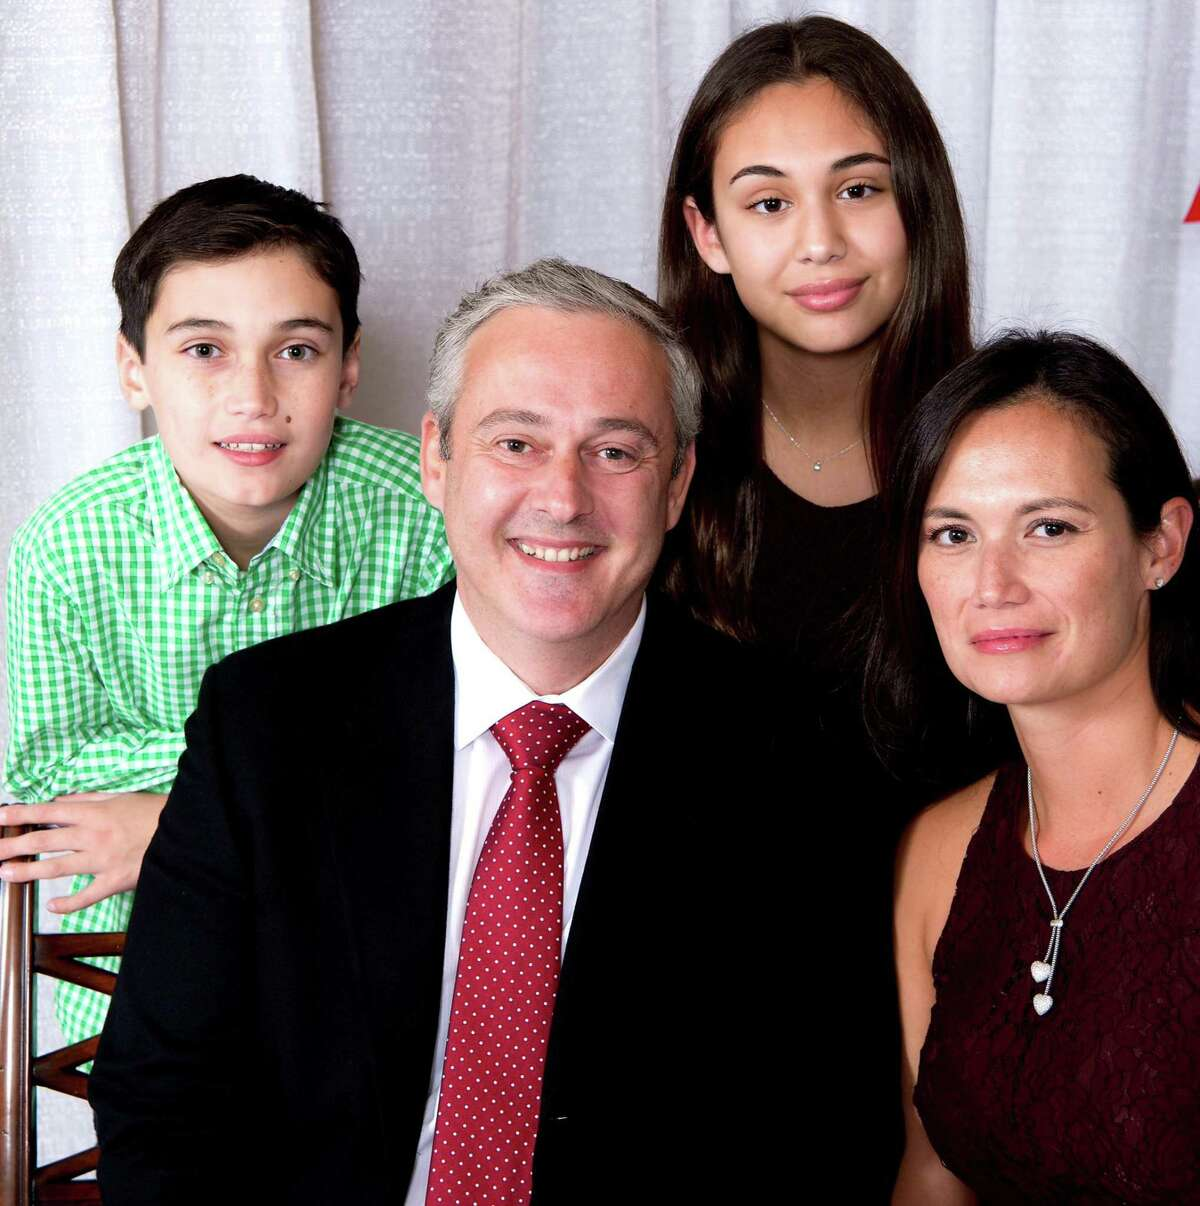 John Kydes pictured here with his wife, Naomi, daughter, Sophia, 16, and son, John, 14. Kydes, a Democrat in his fourth term on the Common Council in Norwalk, Conn., announced on Dec. 8, 2020 he's launching an exploratory committee to look into a potential run for mayor.